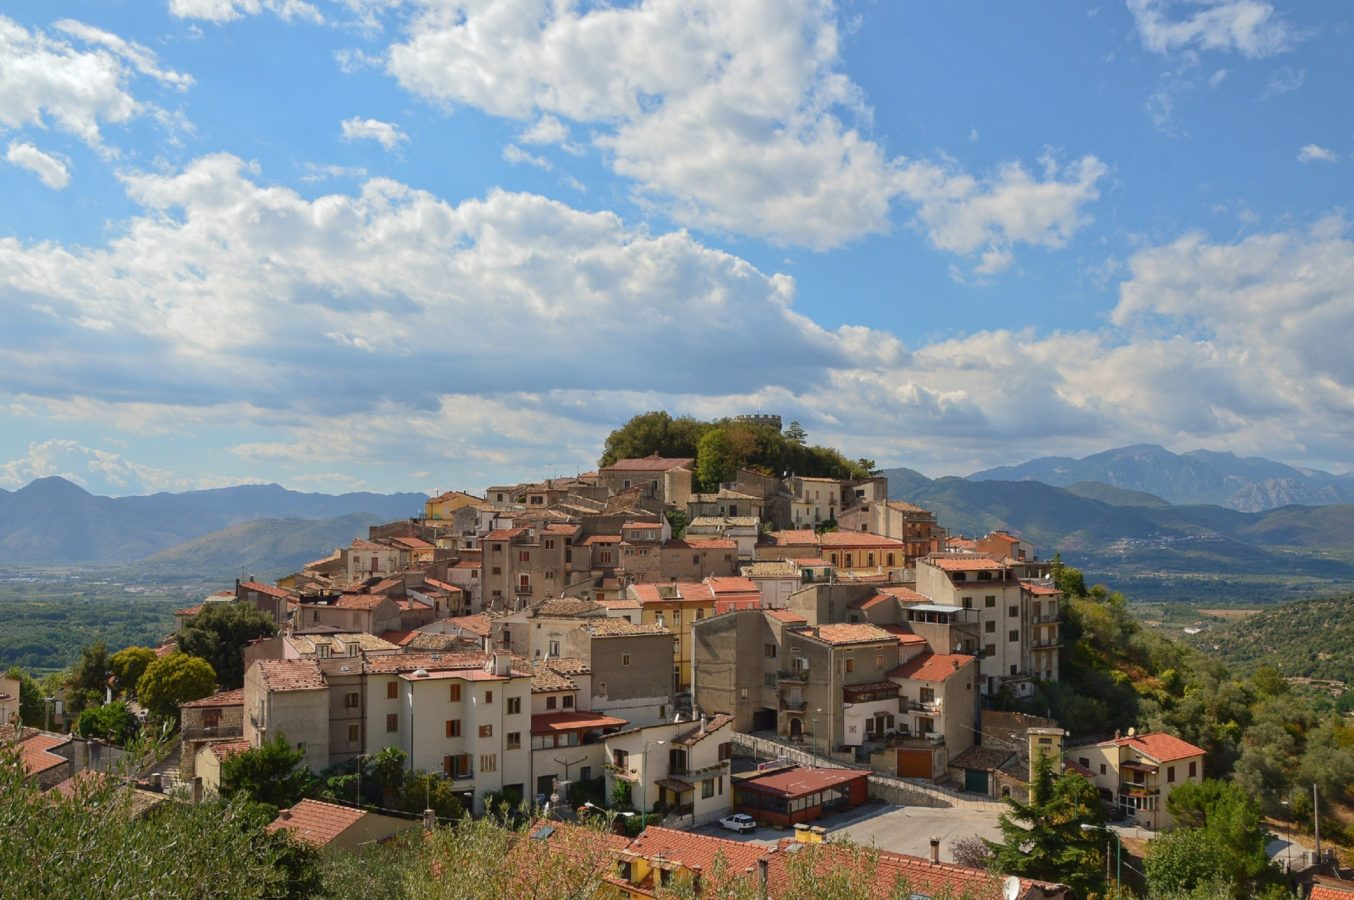 View of the village of Monteroduni in the Molise region